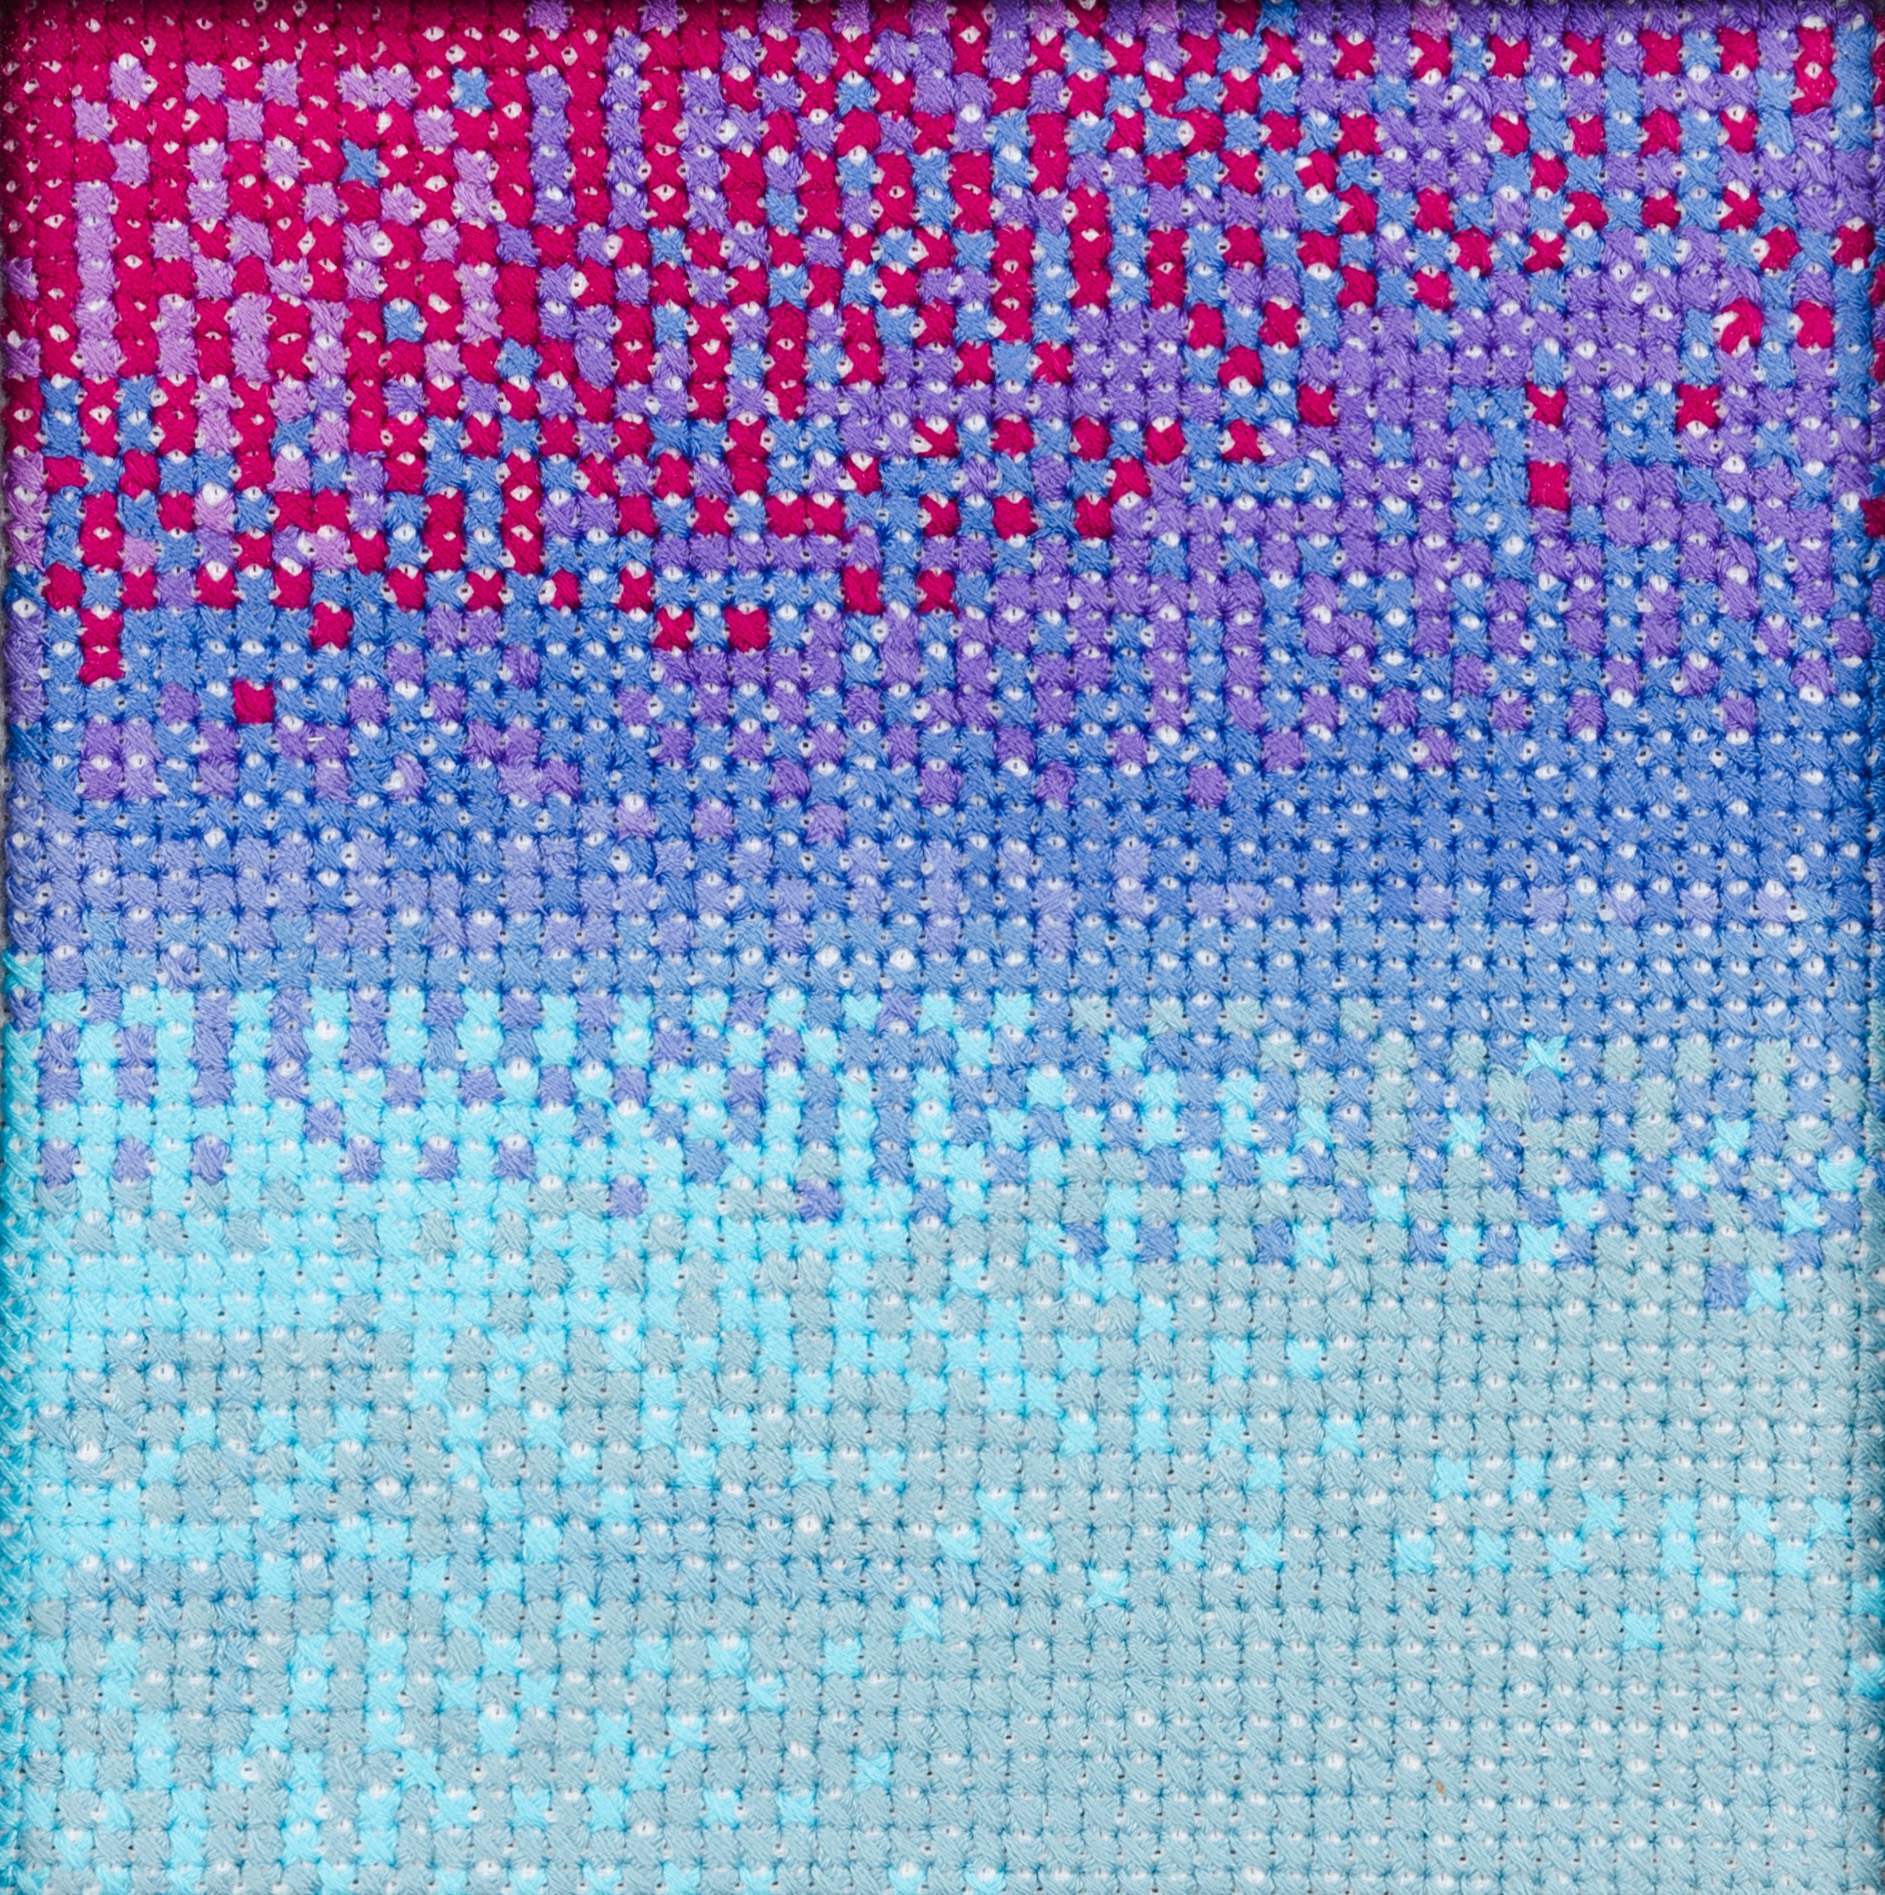 PIERRE LE RICHE. Gradient in purple and turquoise, 2016. Cross-stitch embroidery on Aida cloth. 2500 stitched. 190 x 190mm. Framed.jpg